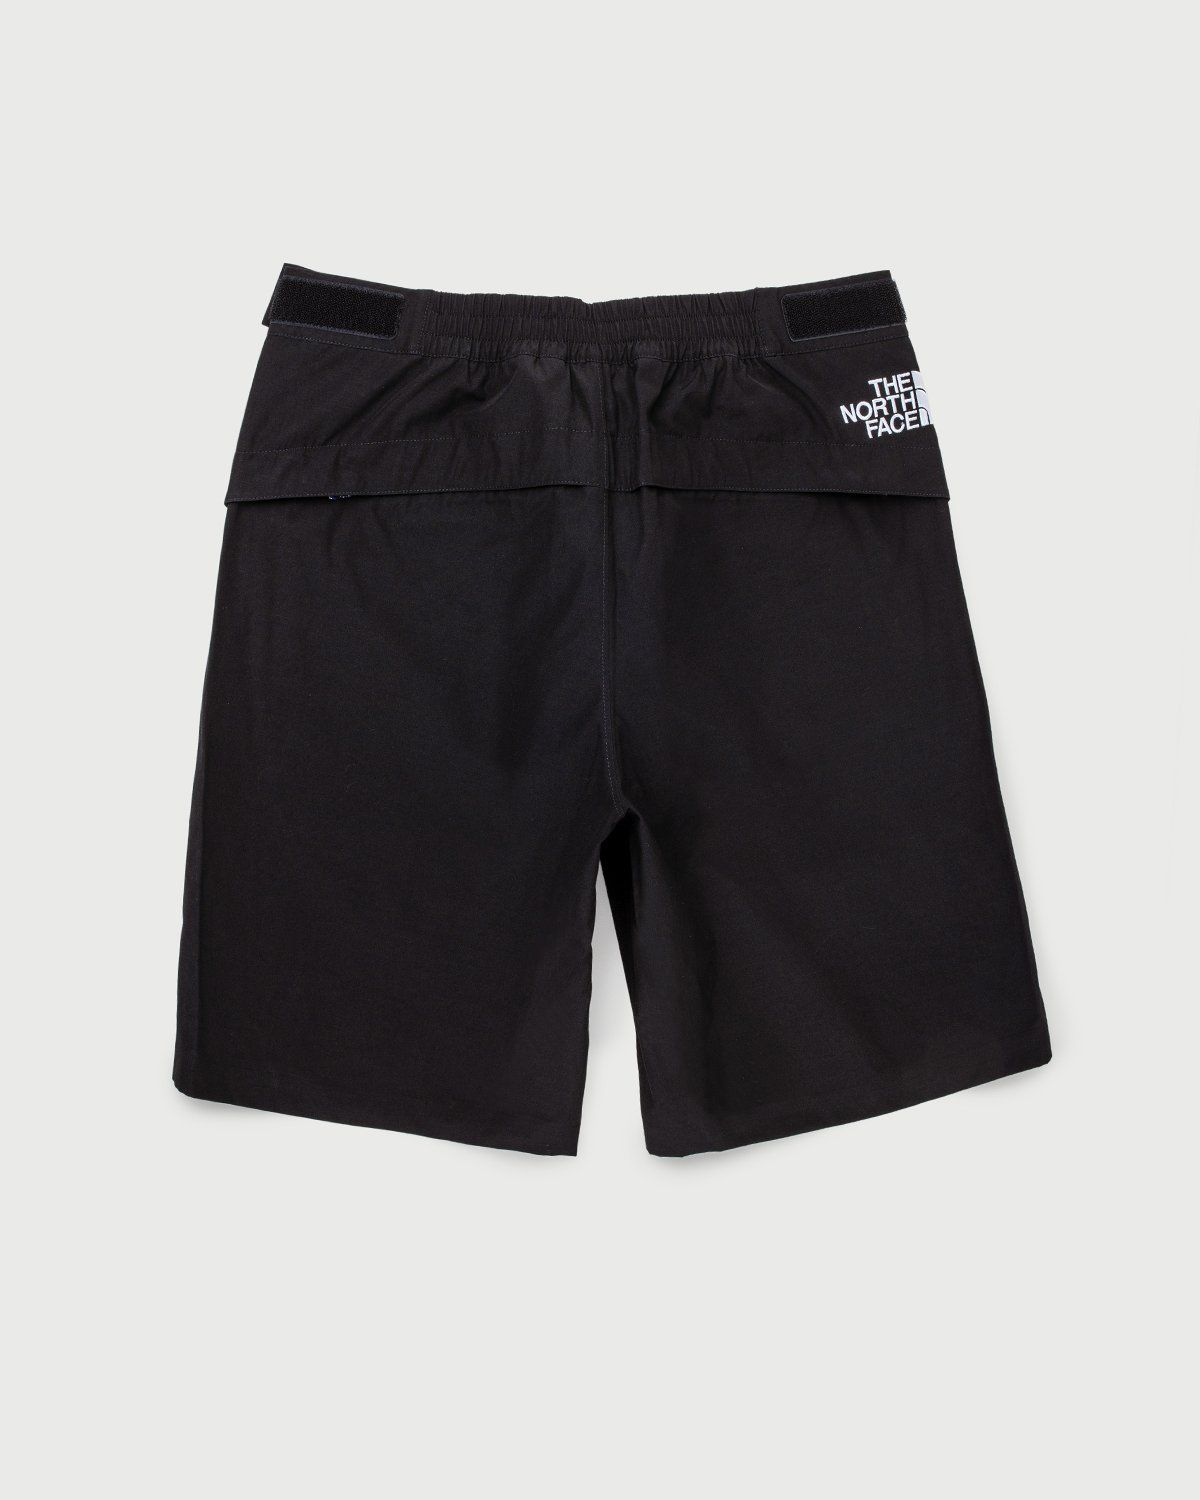 The North Face Black Series - Spectra® Shorts Black - Image 5